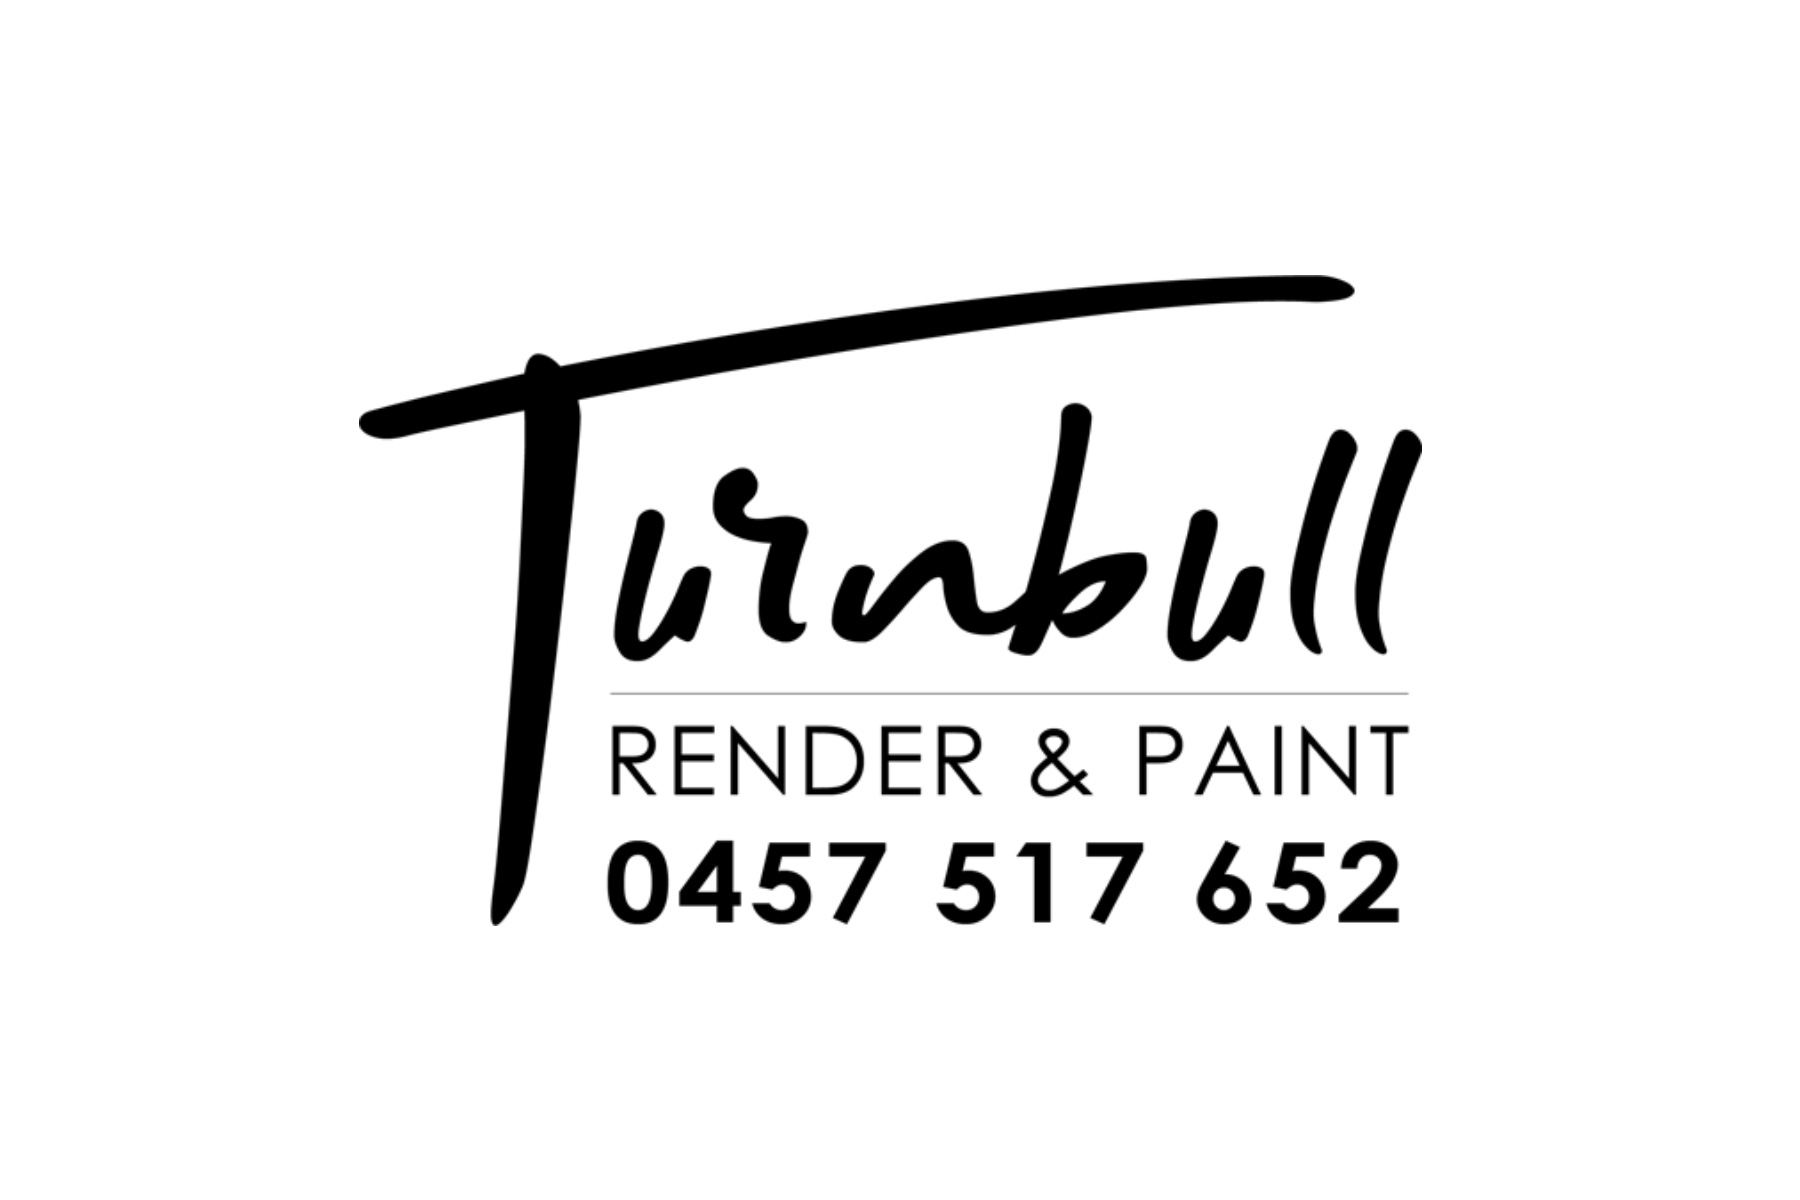 Turnbull Render and Paint